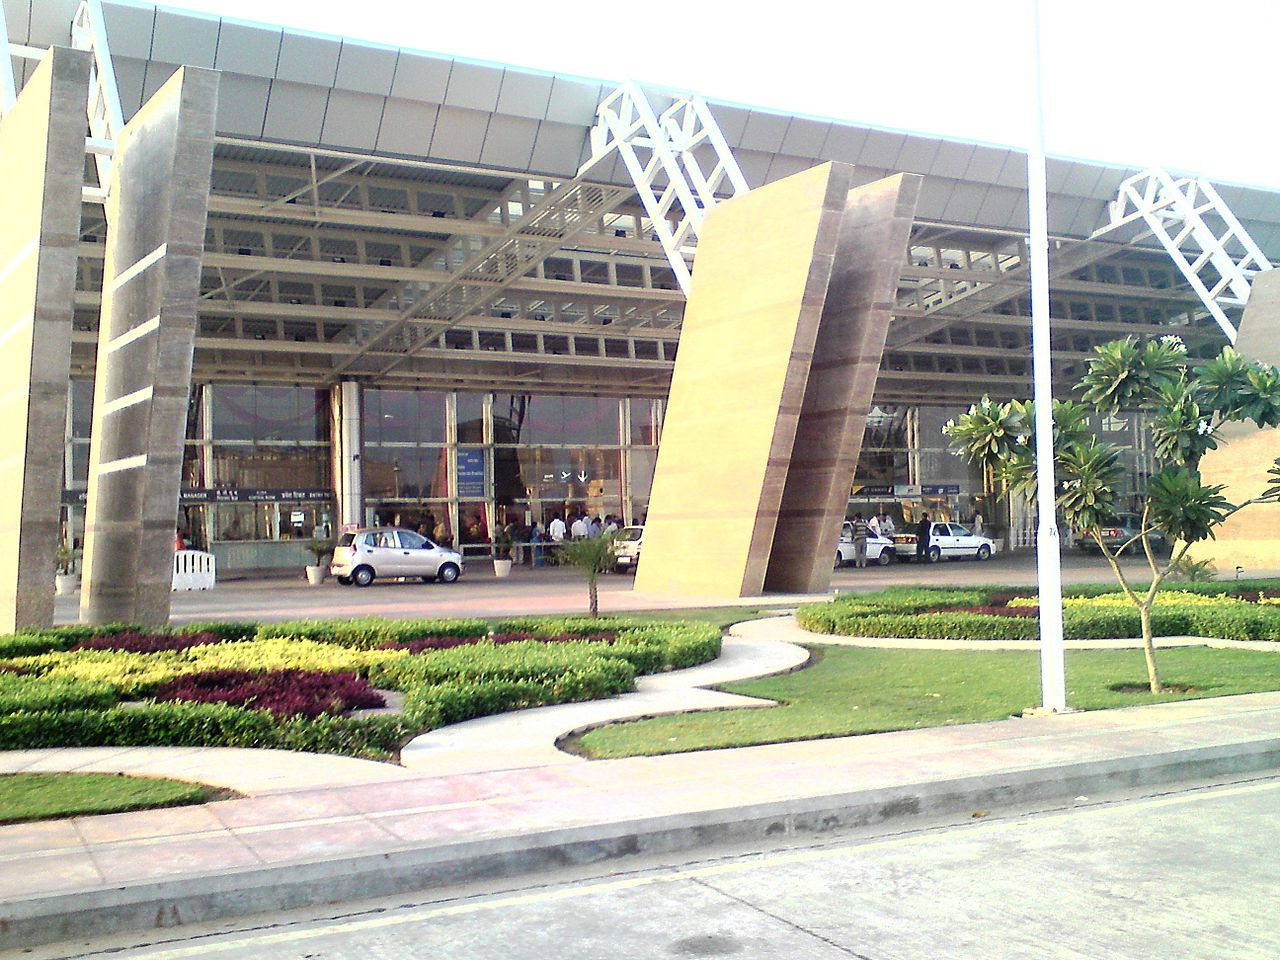 busiest airports in india,busiest airports in  the india,busiest airports of india, list of busiest airports in india,busiest international  airports in india,top 10 busiest airports in india, top 20busiest airports in india,top 5 busiest airports in india,first busiest airports in india,busiest airports in india 2020, busiest airports in india by passenger traffic busiest airports in the india,